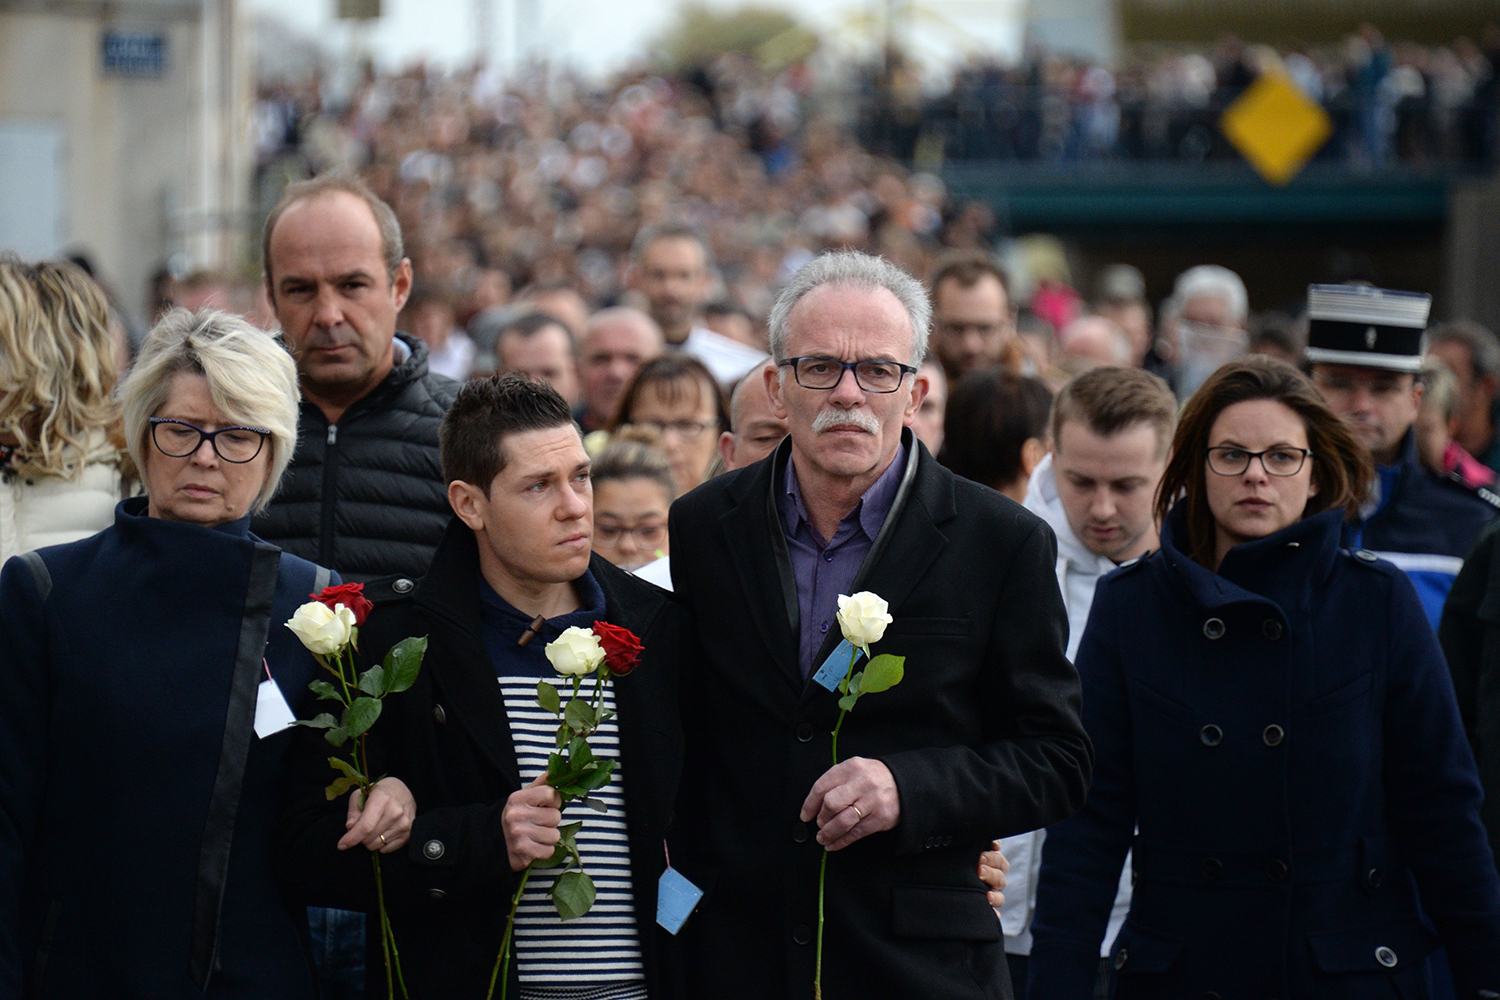 Thousands March In France In Honour Of Murdered Jogger Alexia Daval     Thousands March In France In Honour Of Murdered Jogger Alexia Daval   Marie  Claire Australia